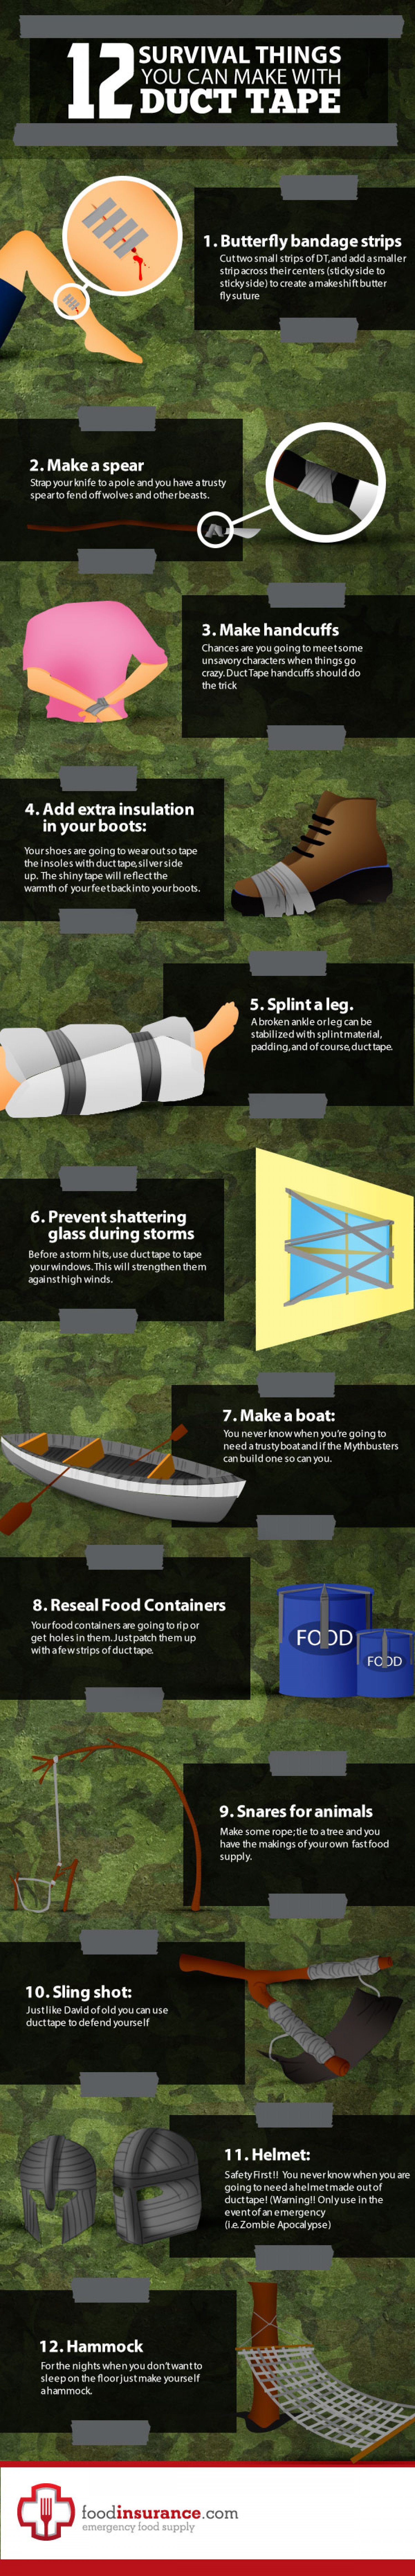 12 Survival Things You Can Make With Duct Tape Infographic